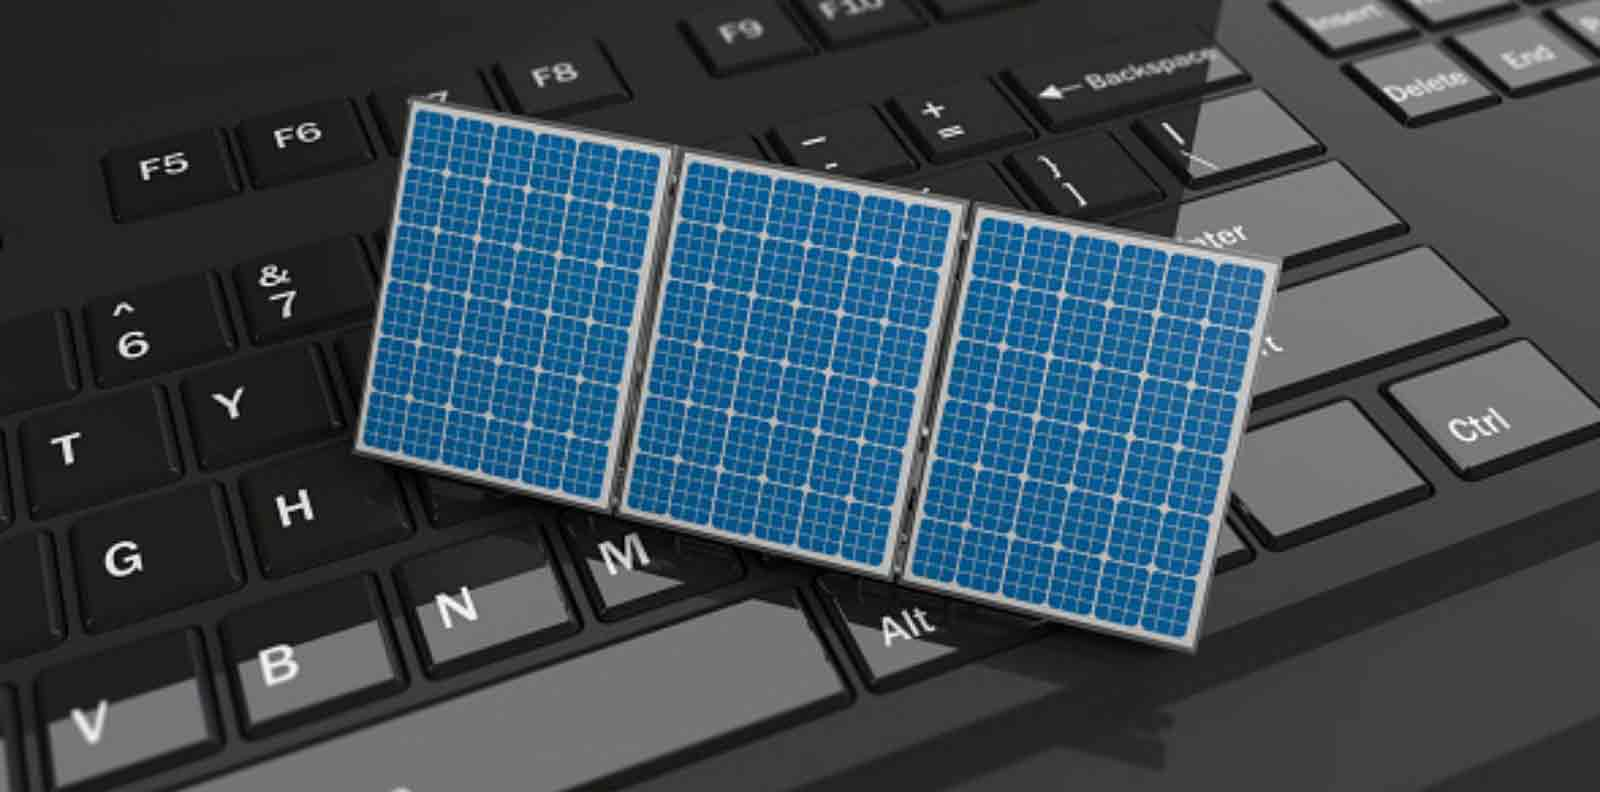 Portable Solar Panel Chargers for Laptops